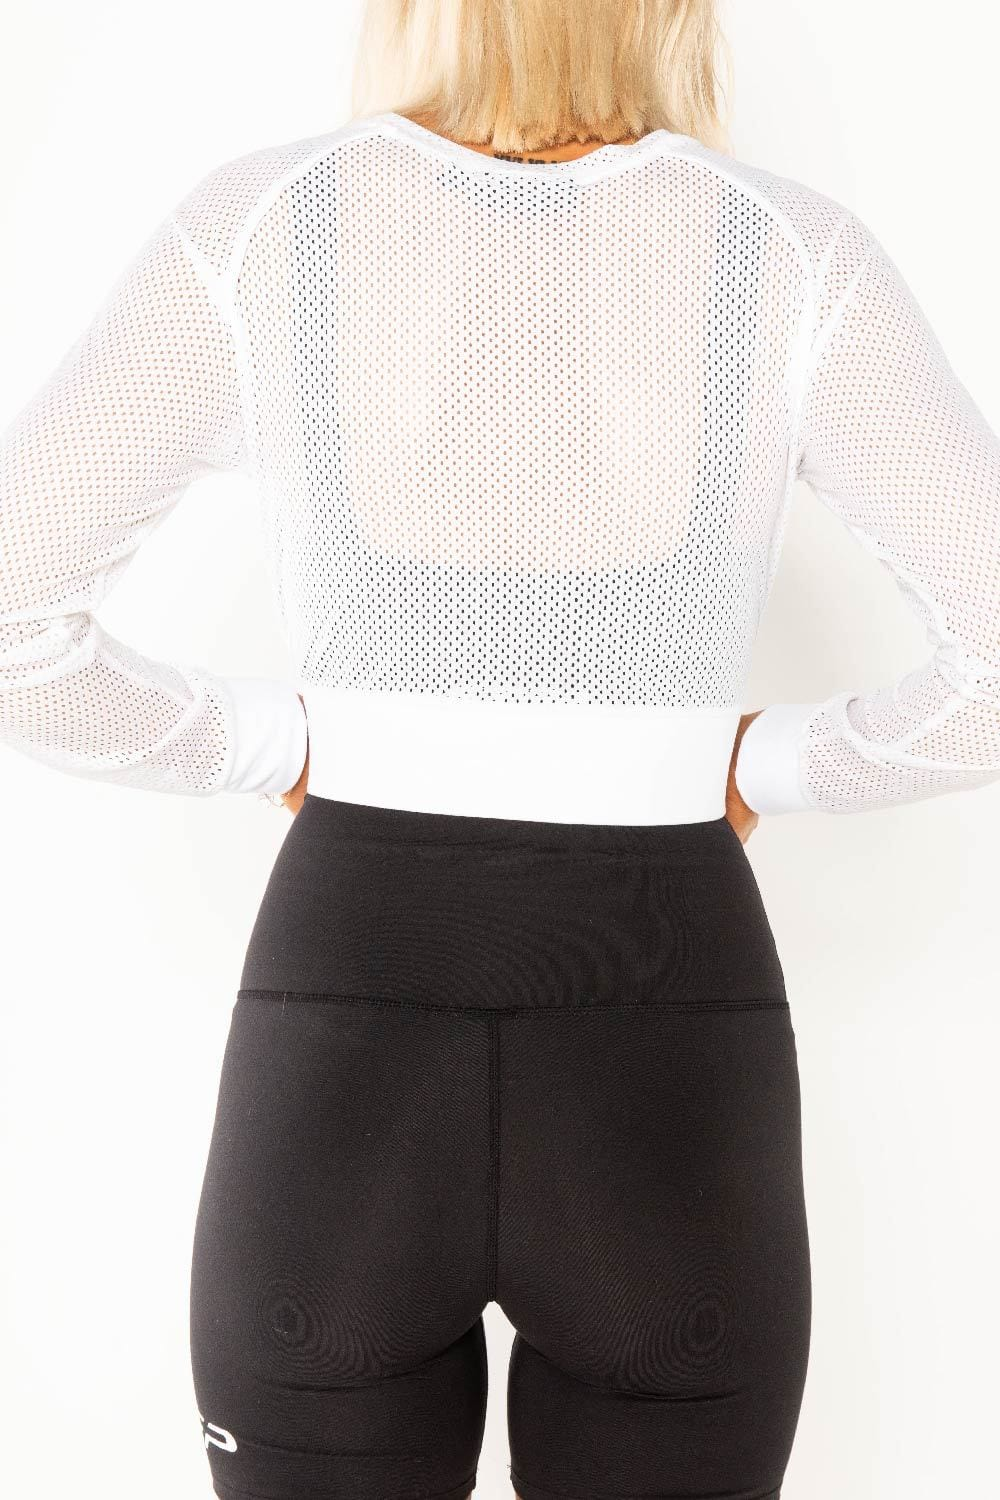 The Mesh Long Sleeve